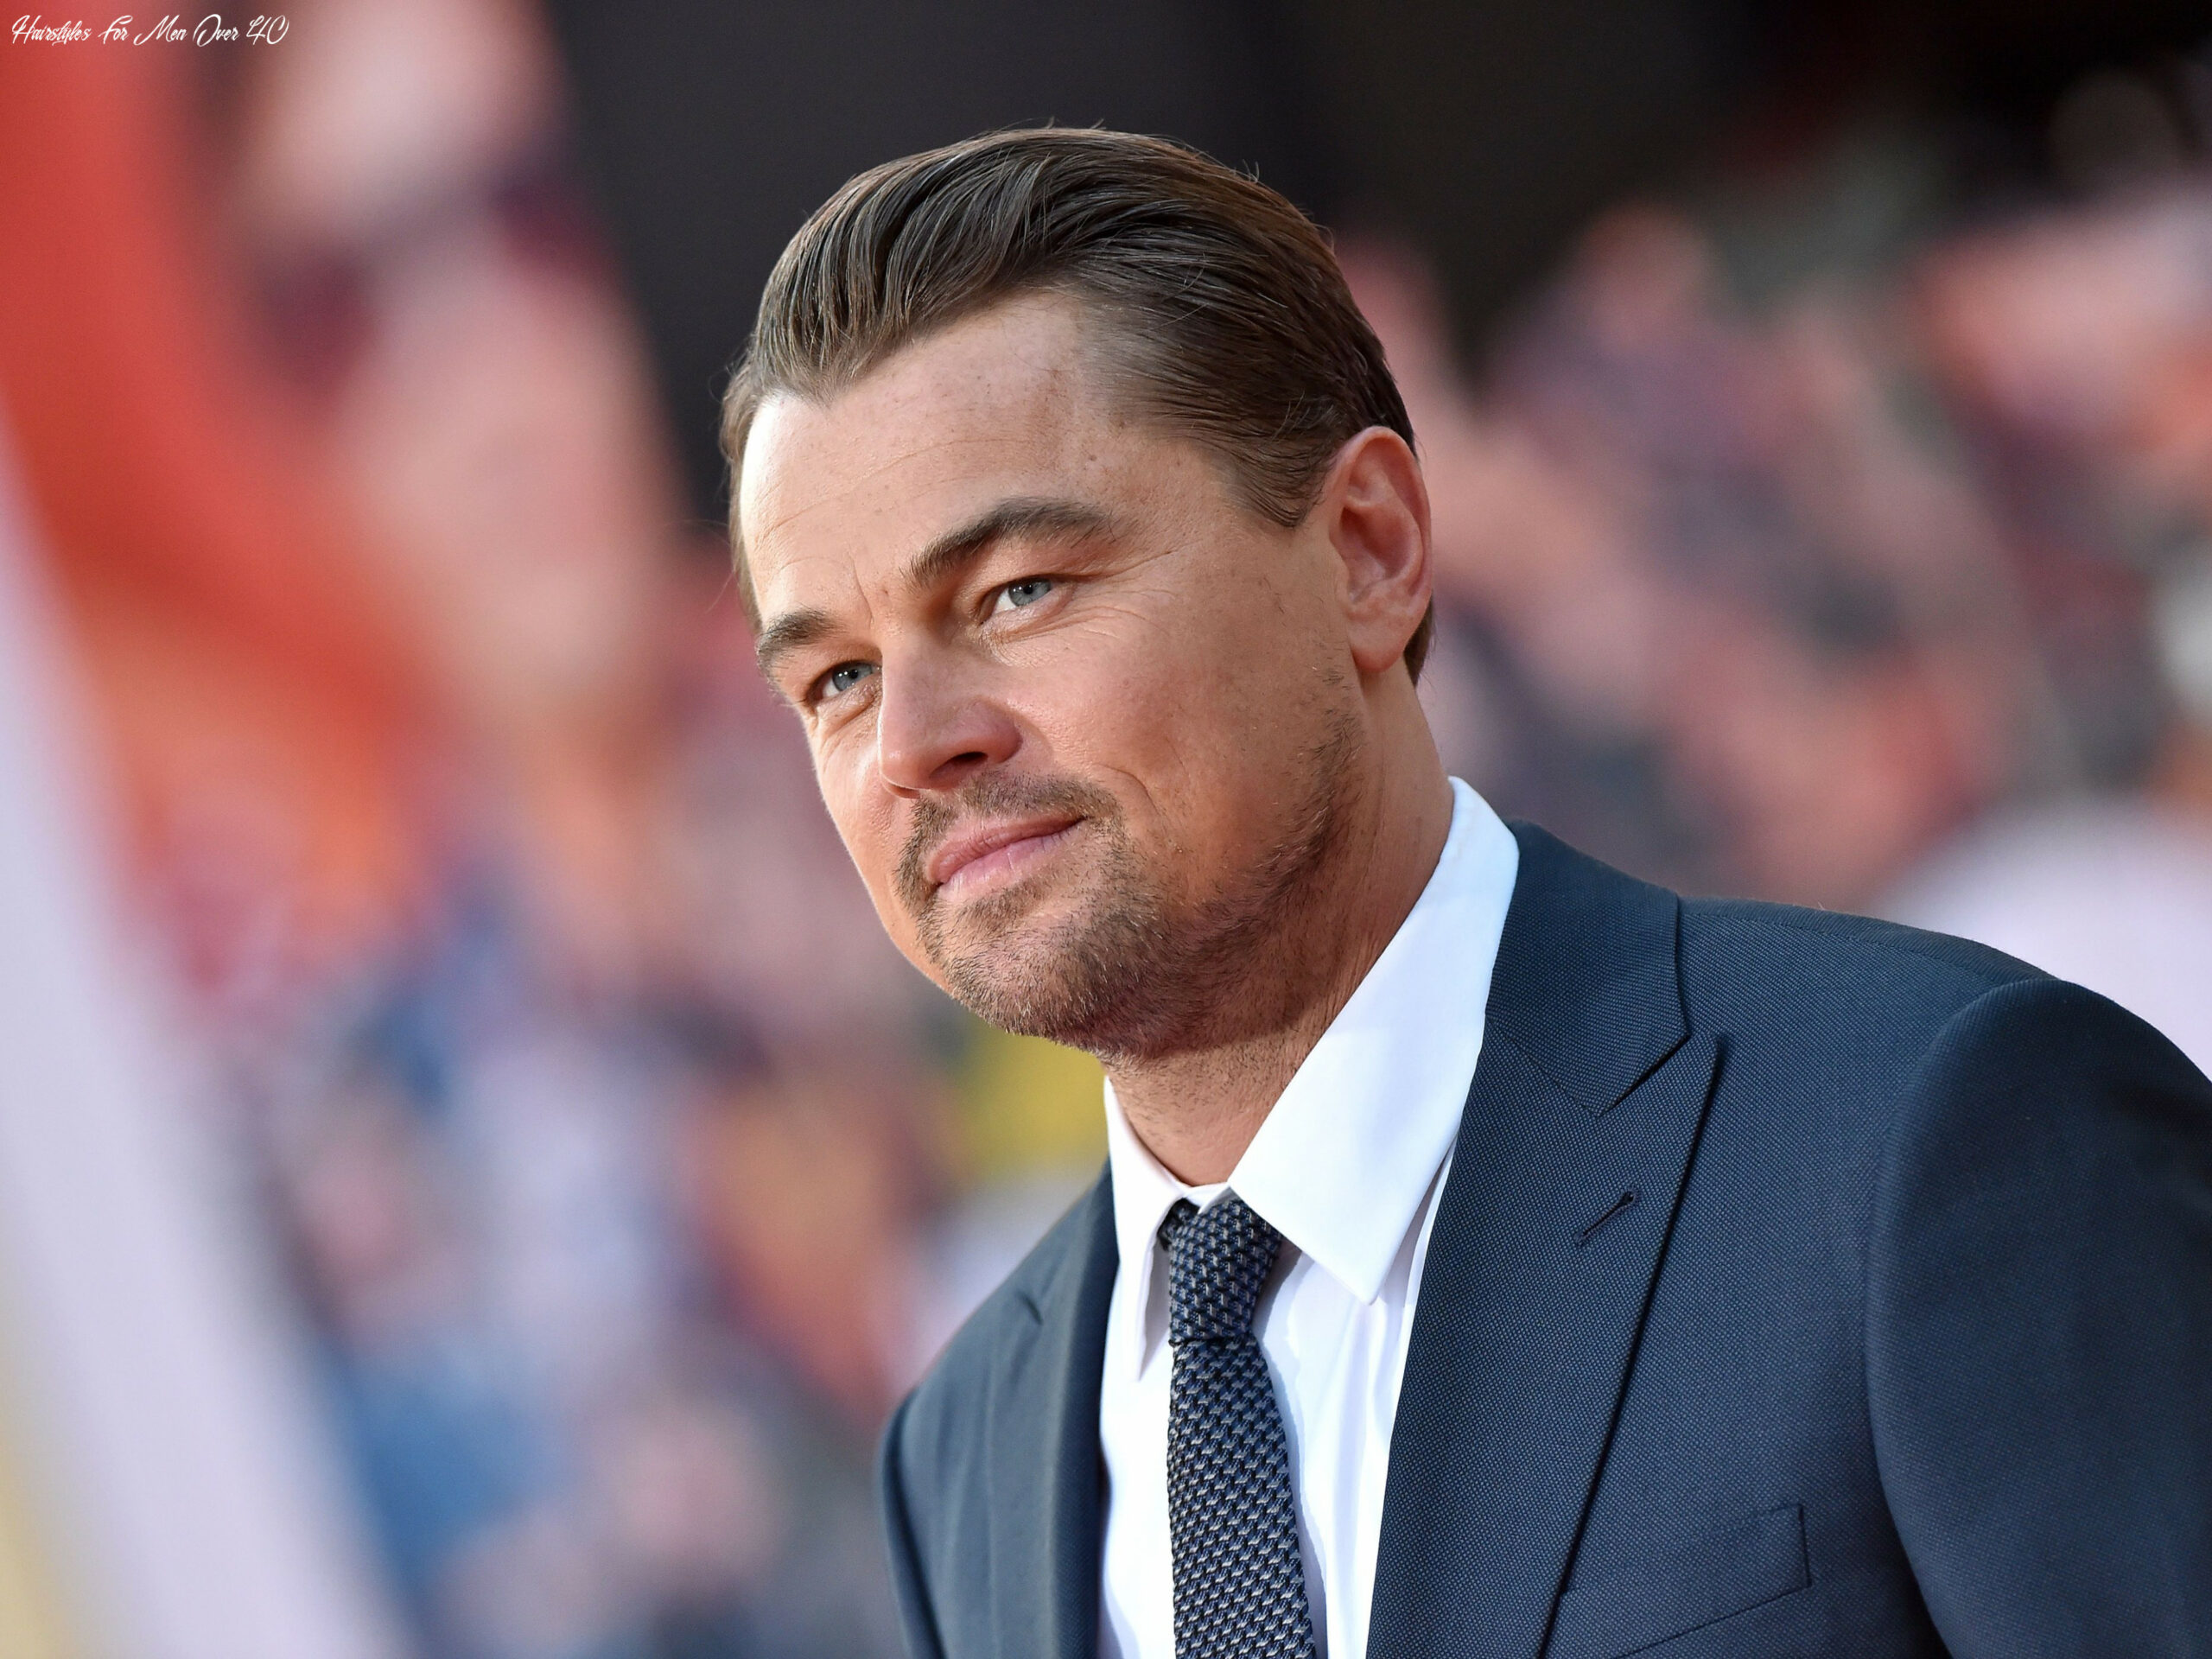 The 8 best haircuts for men over 8 hairstyles for men over 40